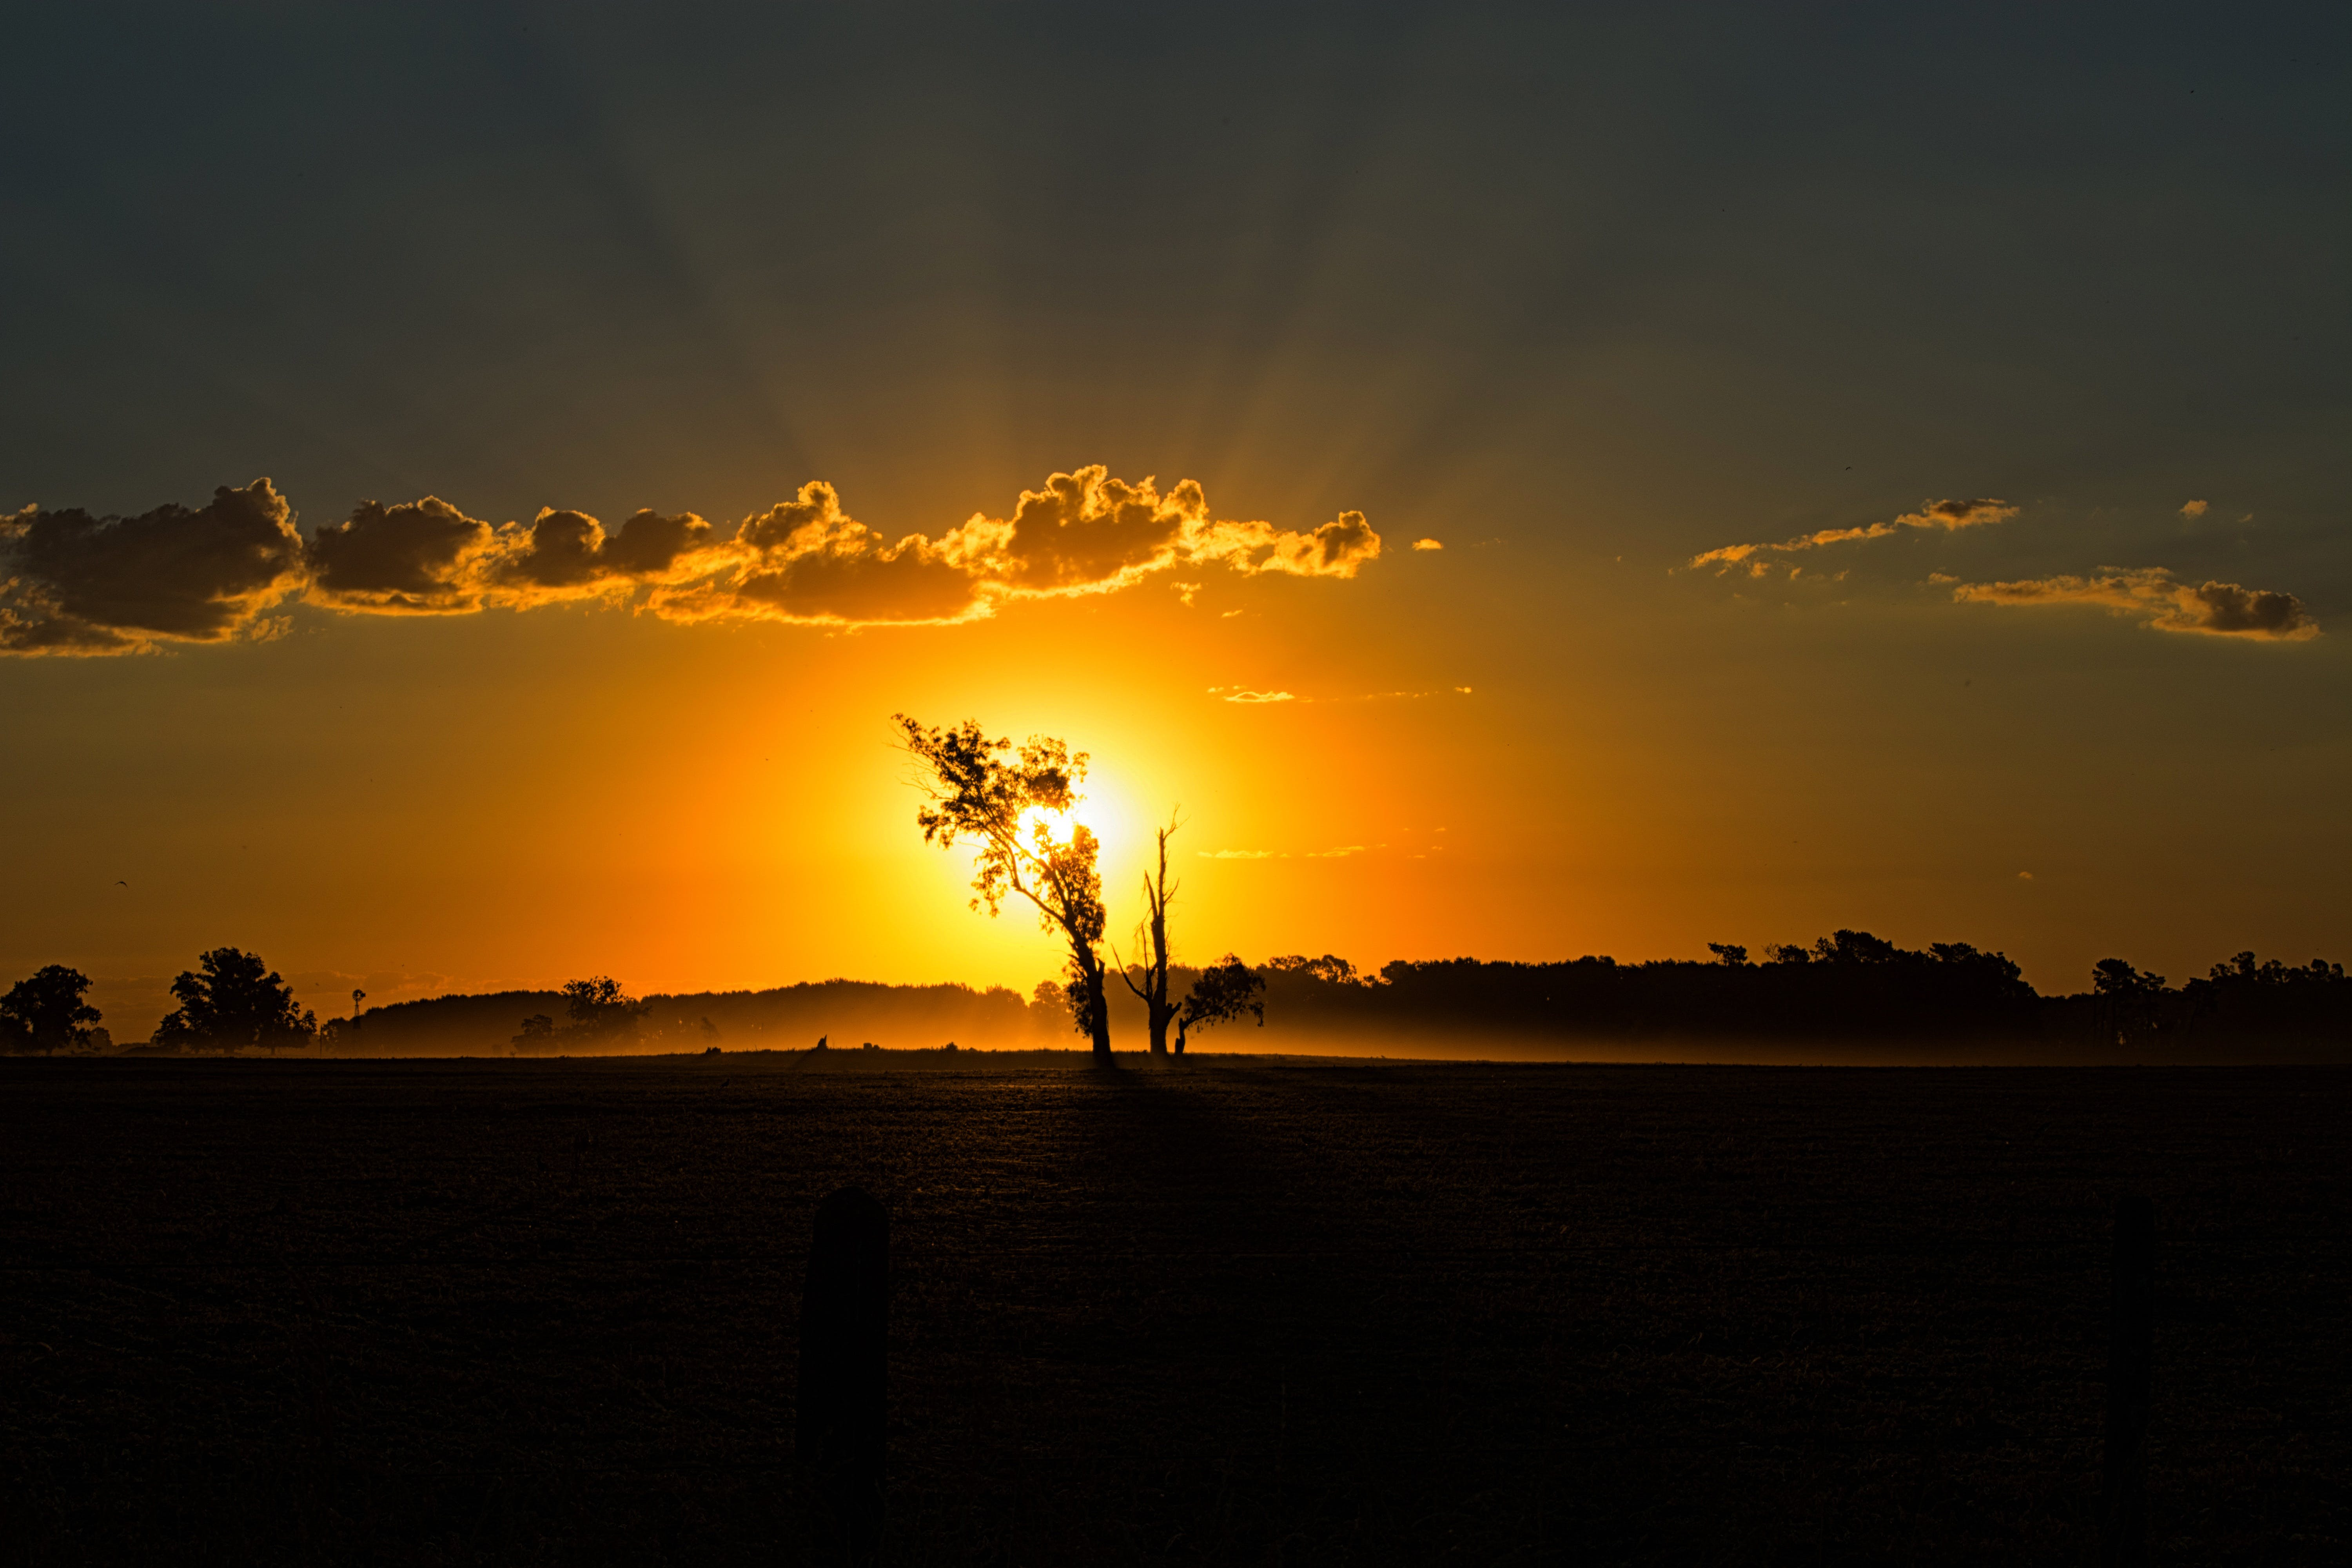 Silhouette of Tree during Dunset Photography